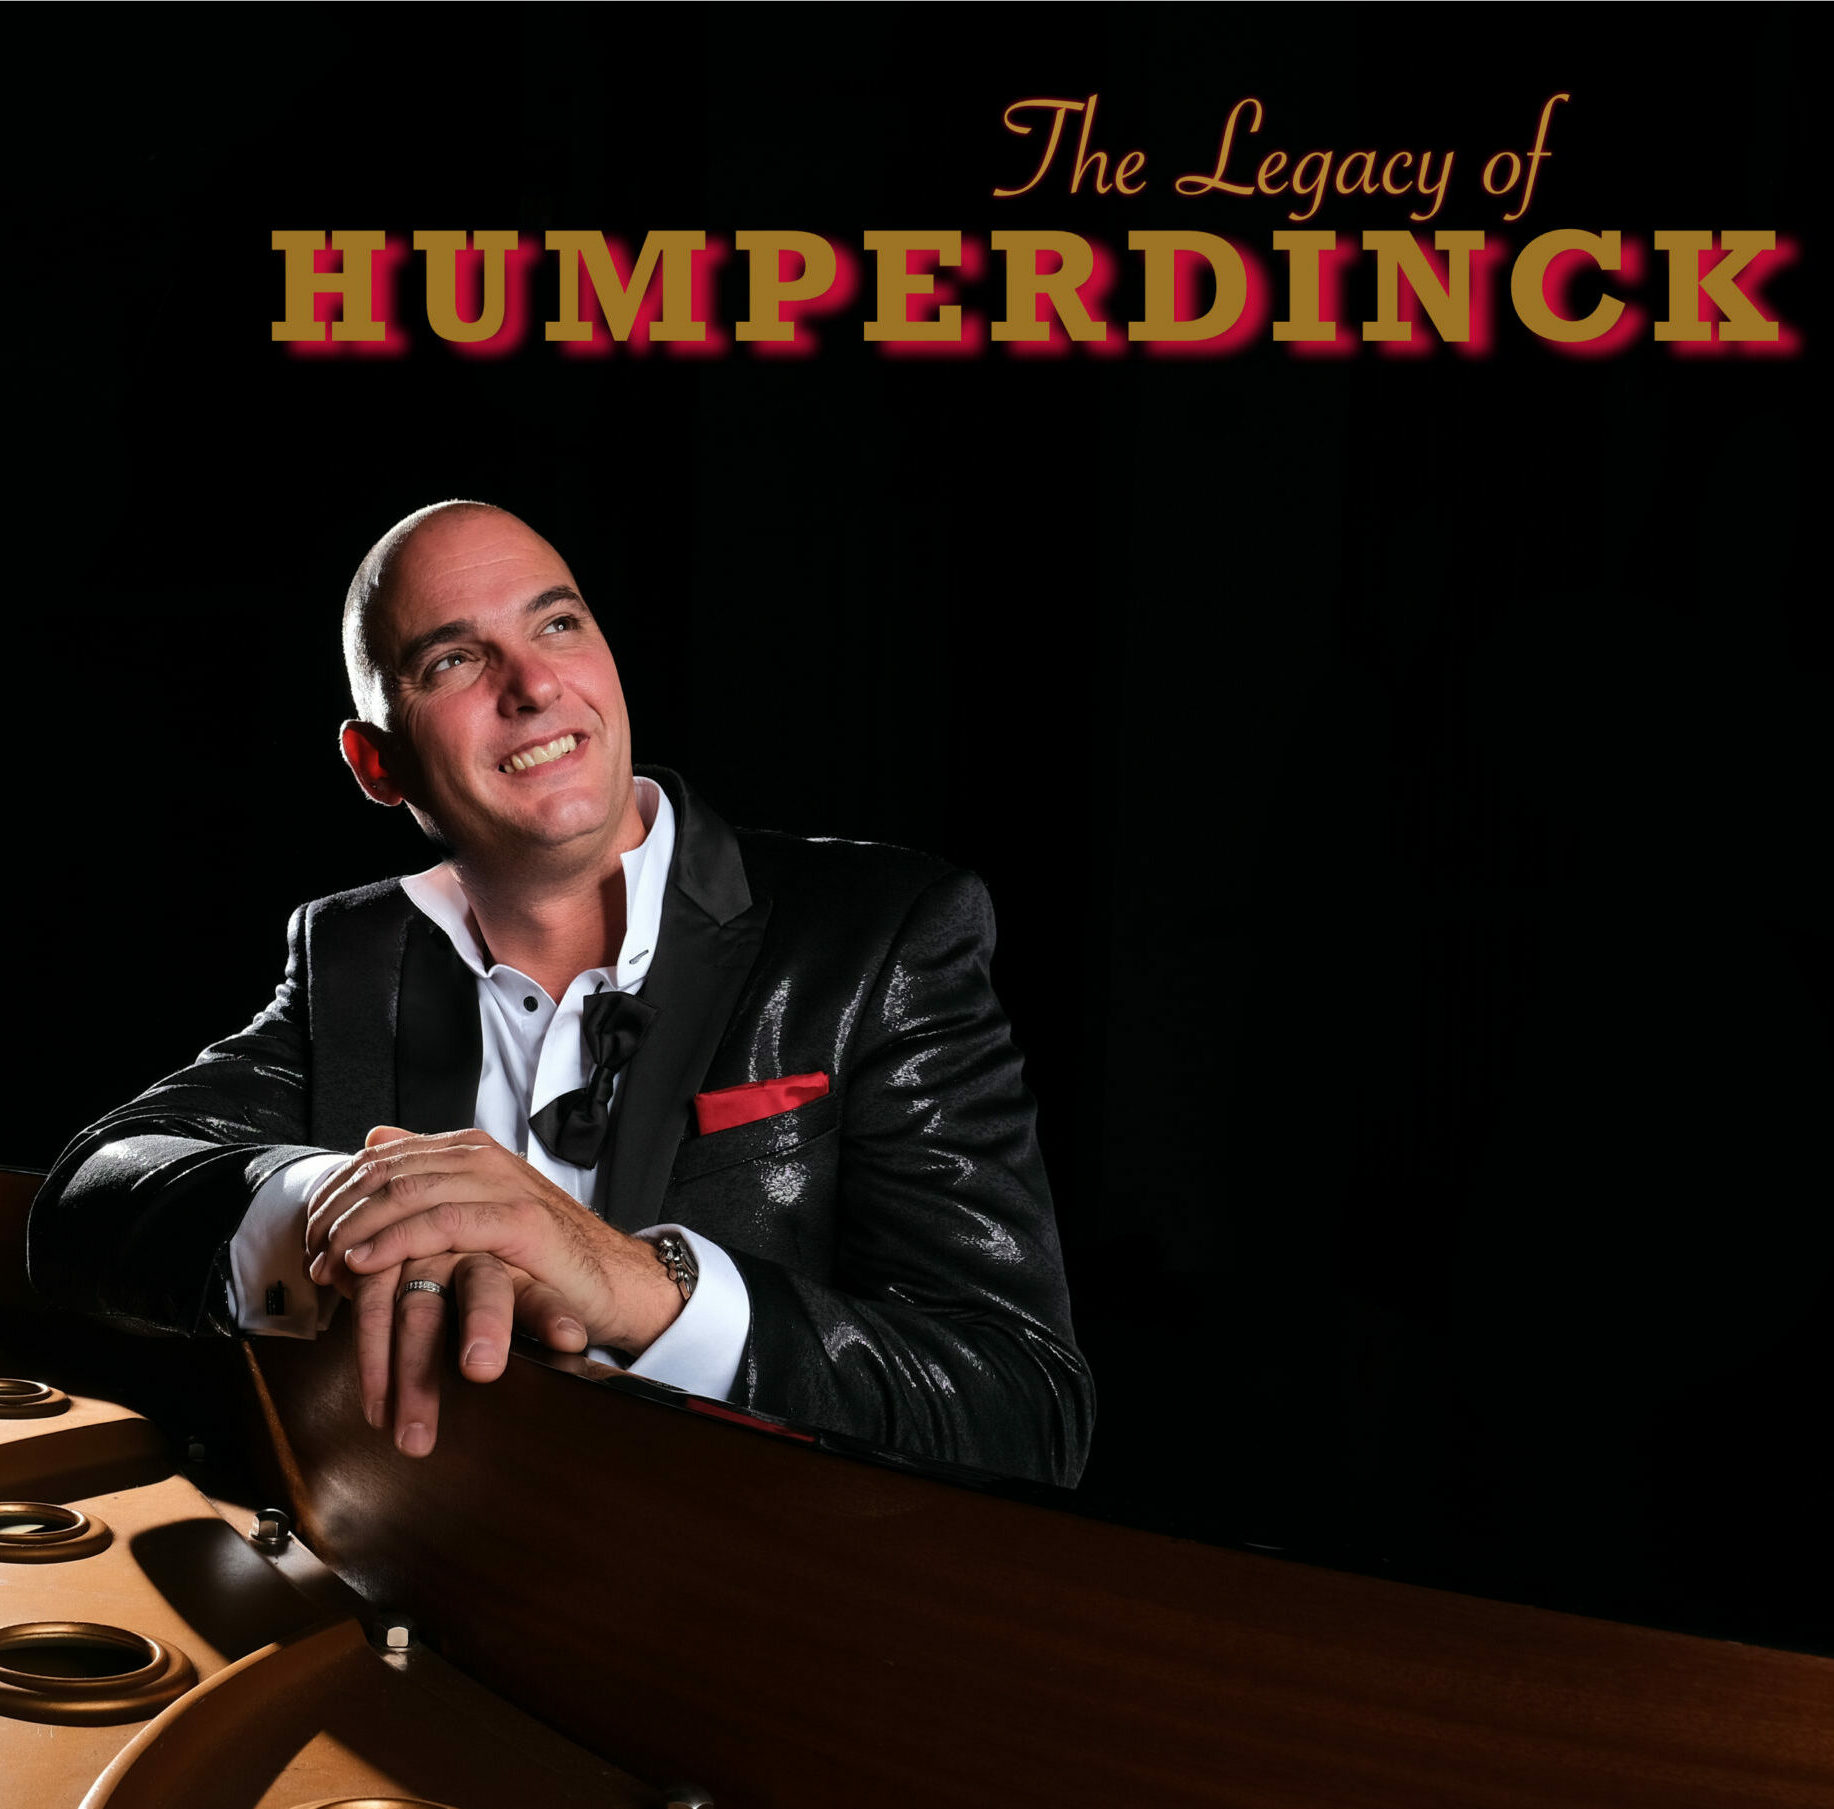 The Legacy of Humperdinck